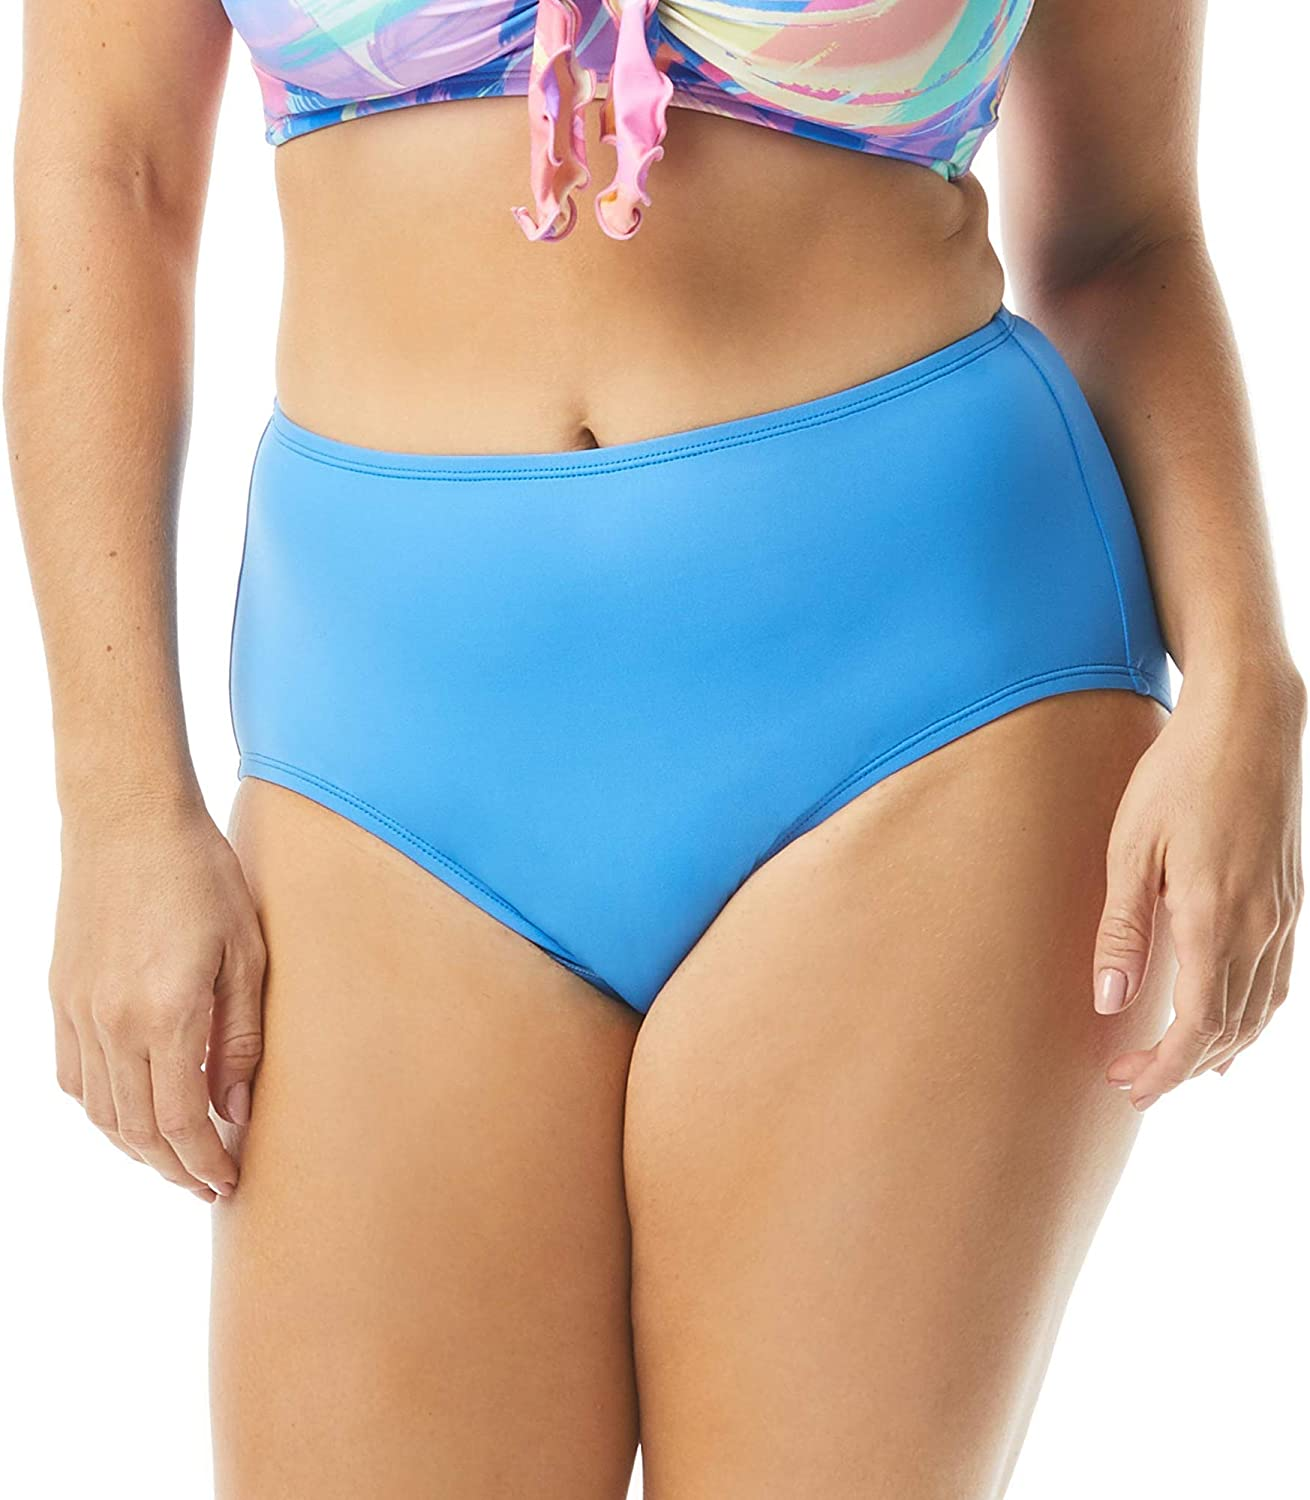 Max 43% OFF High Waisted Chloe Bikini Bottom Full Modest Sw Animer and price revision Coverage —